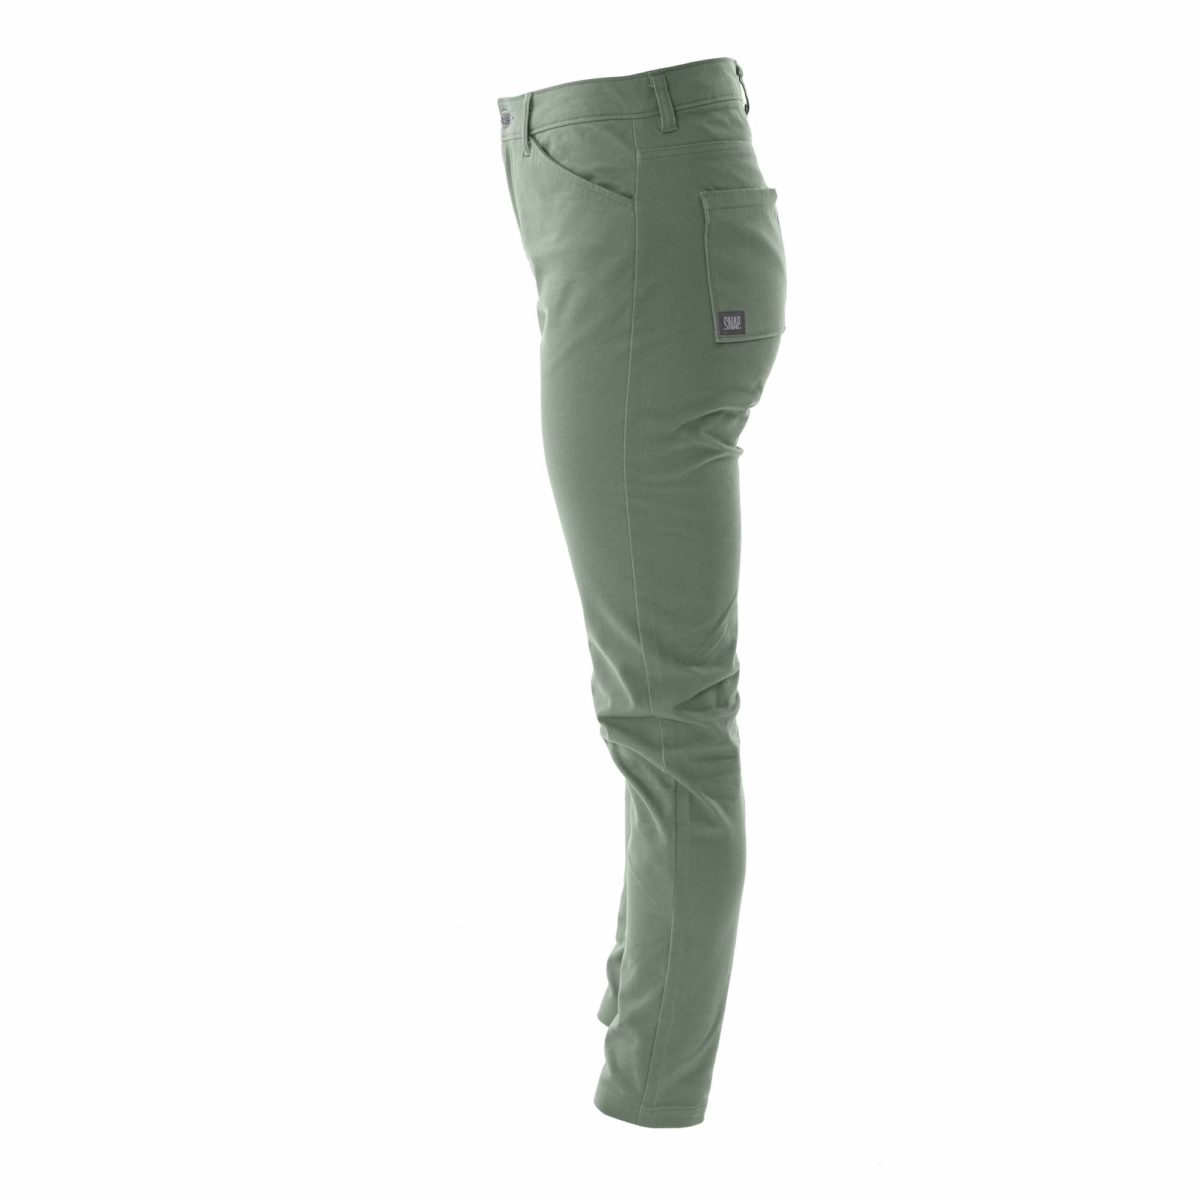 stretch pants for woman